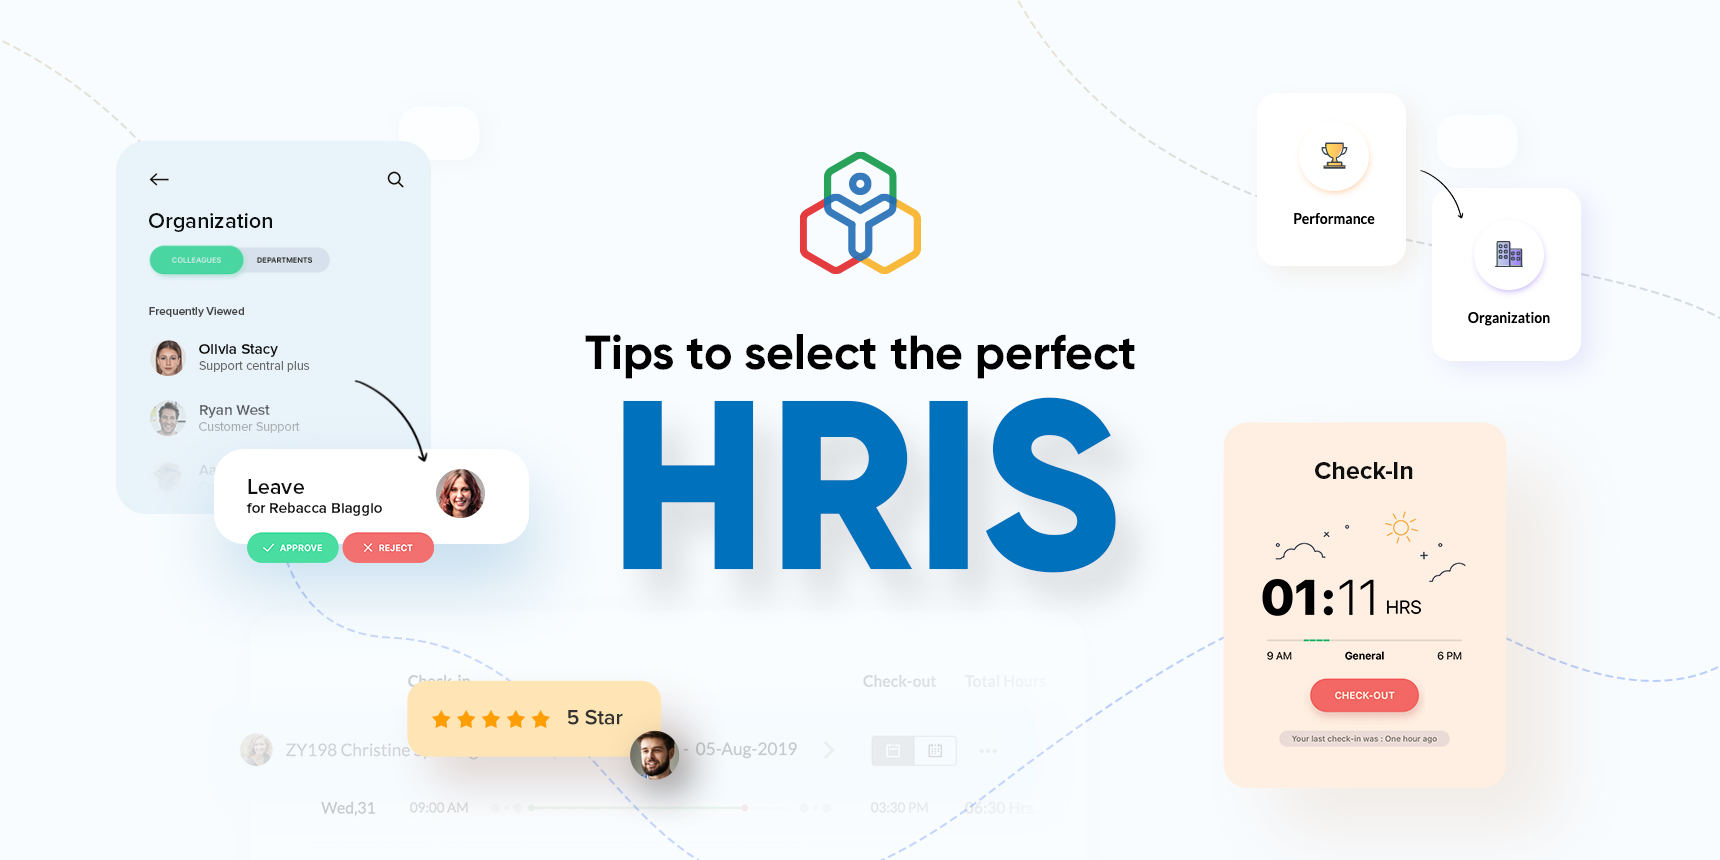 Selecting the perfect HRIS for your organization